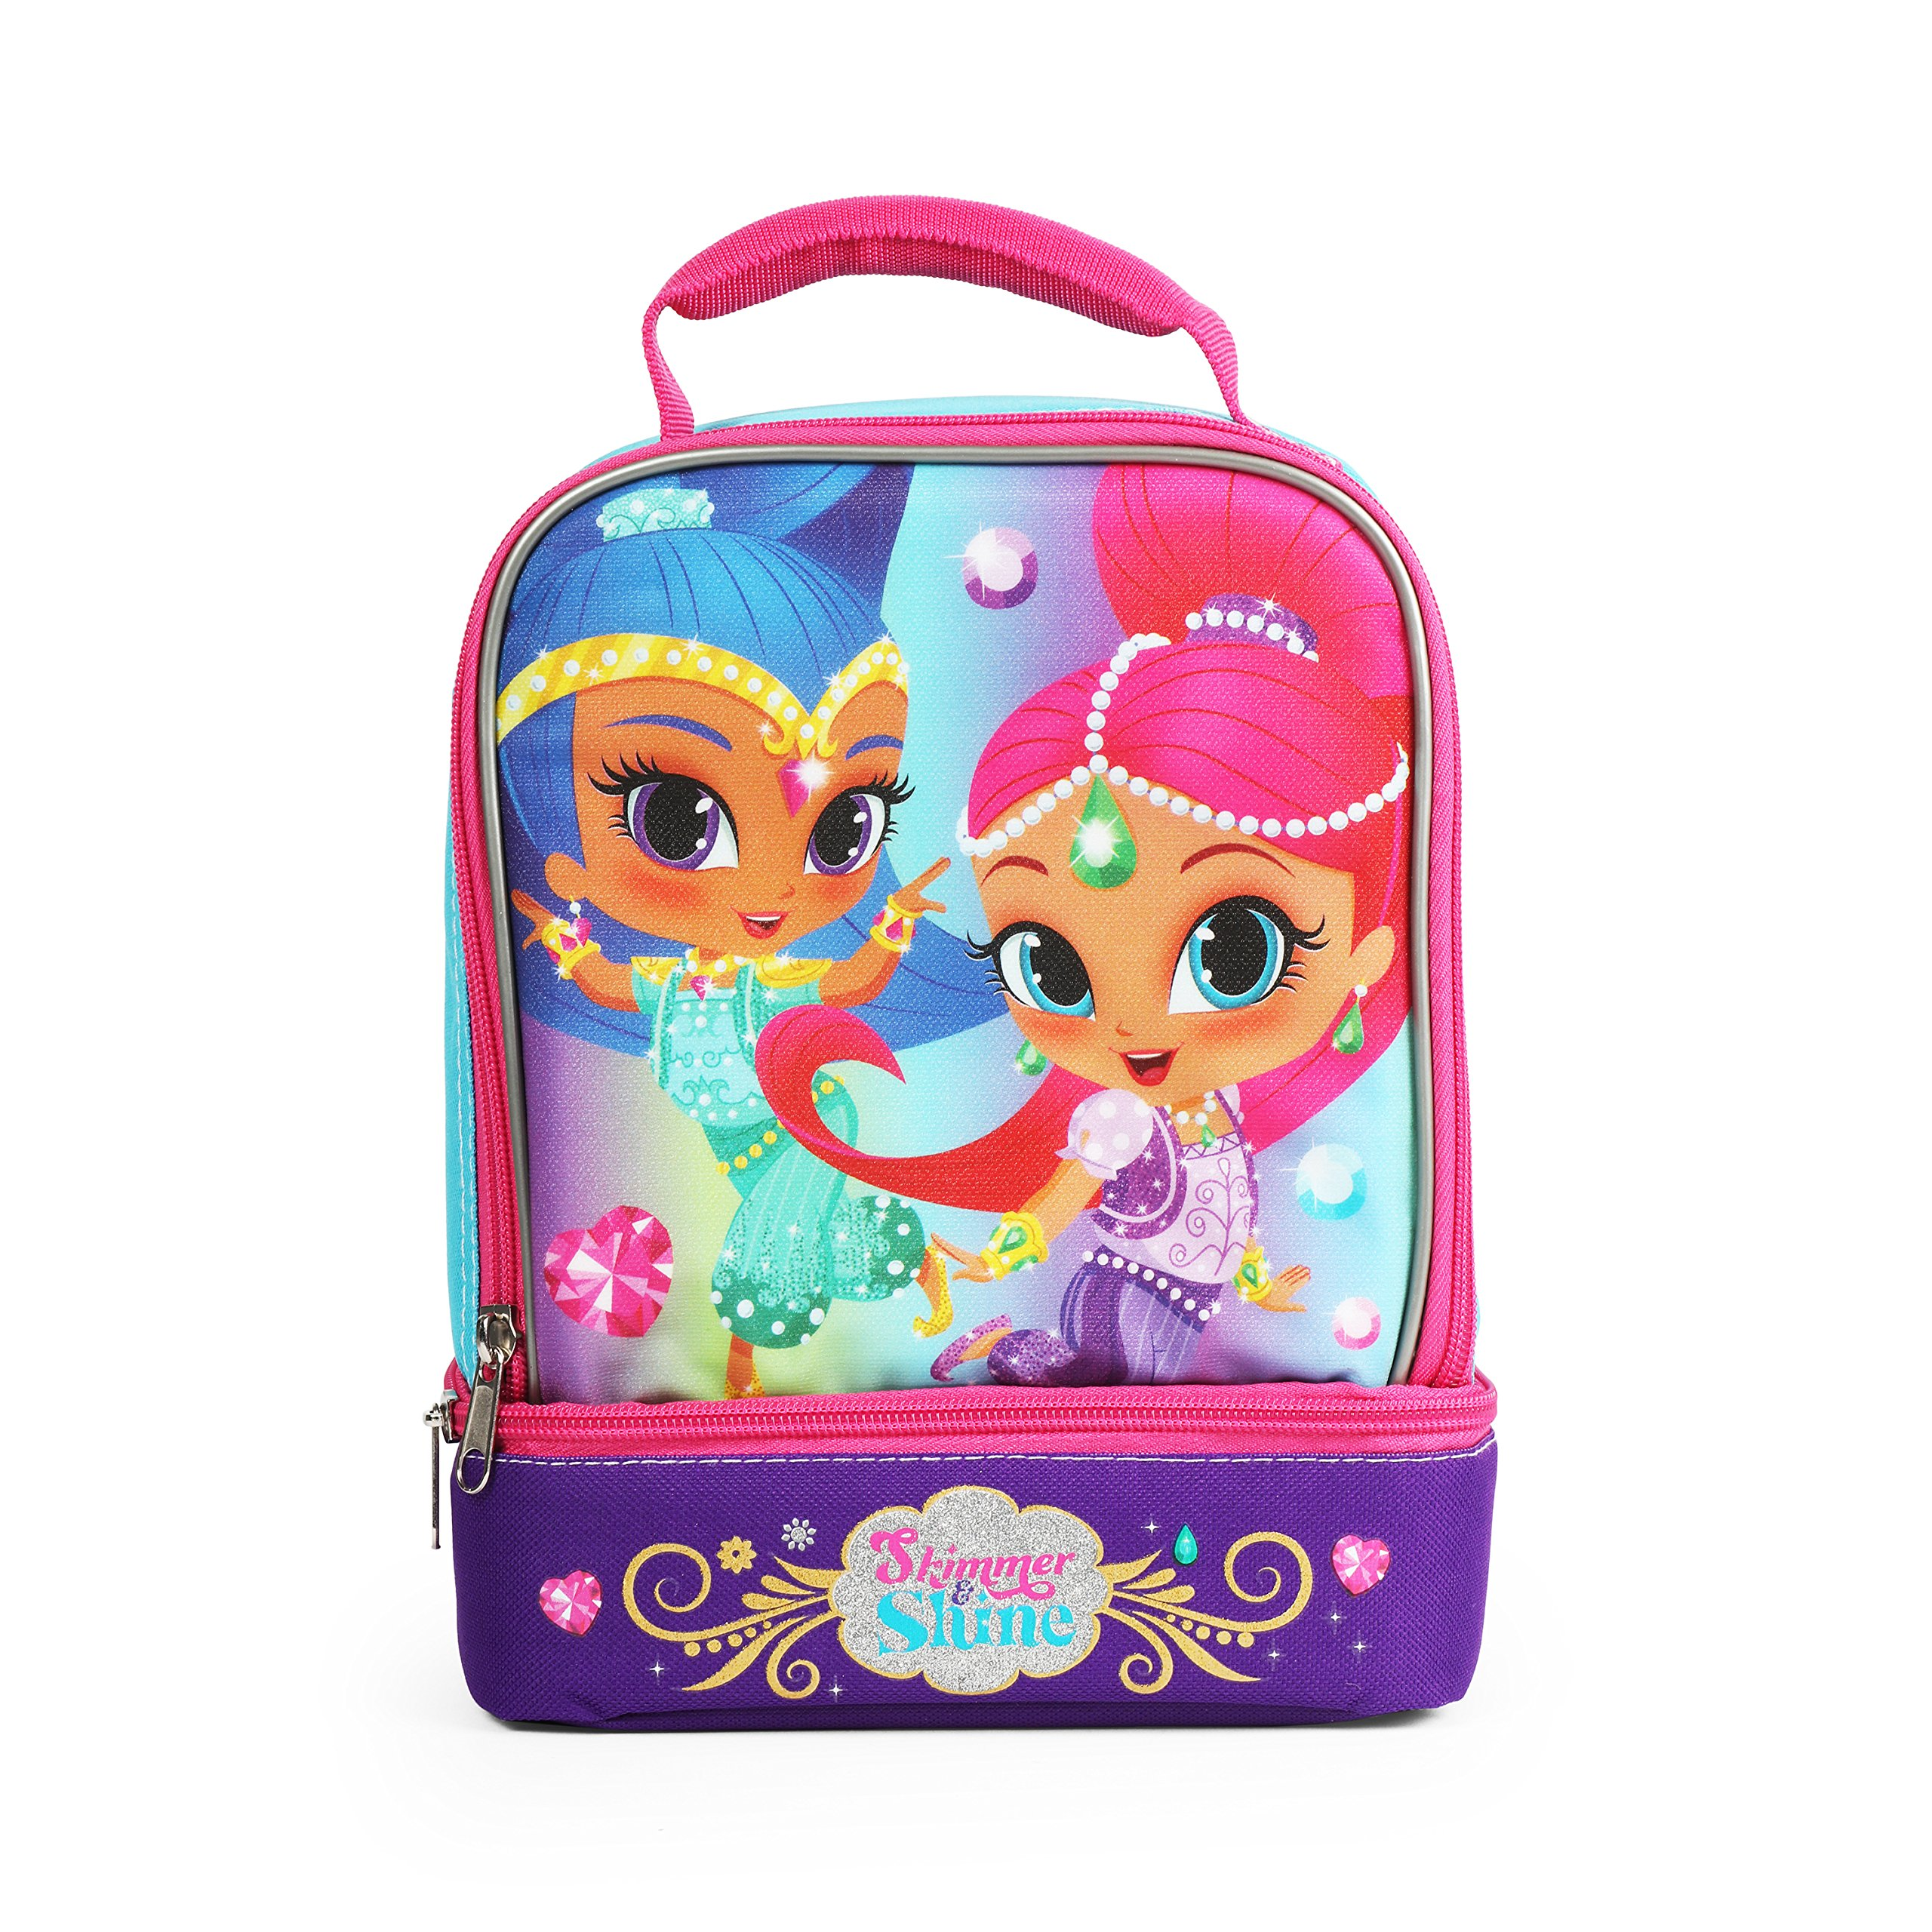 Nickelodeon Shimmer and Shine''Pink Jewels'' Insulated Dual Compartment Lunch Tote with Handle measures 7.5 inches W x 9.0 inches H x 5.0 inches Deep